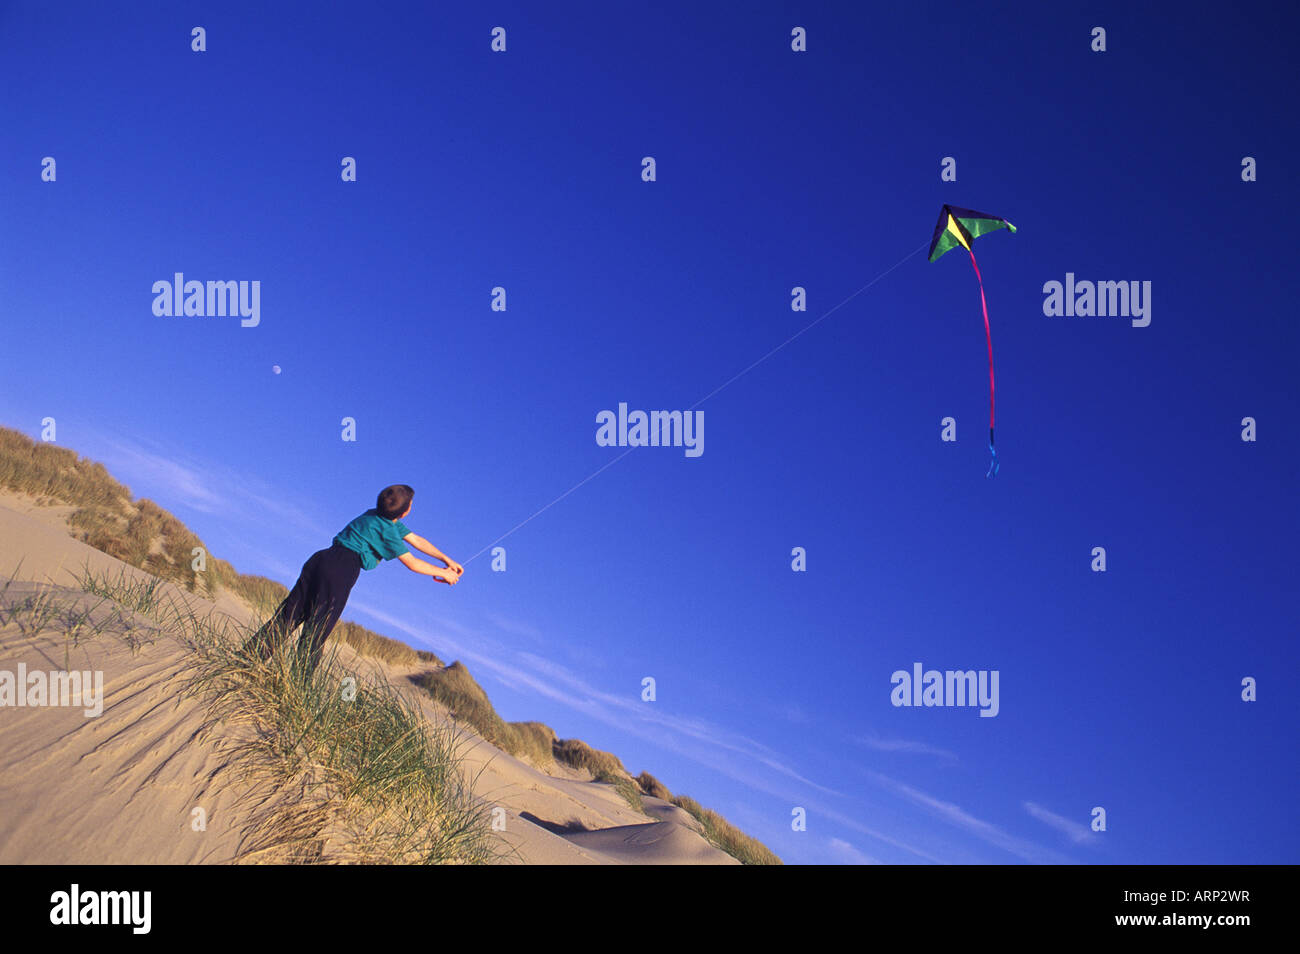 USA, Oregon Dunes National Park, 12 year old boy flies kite from dune - Stock Image